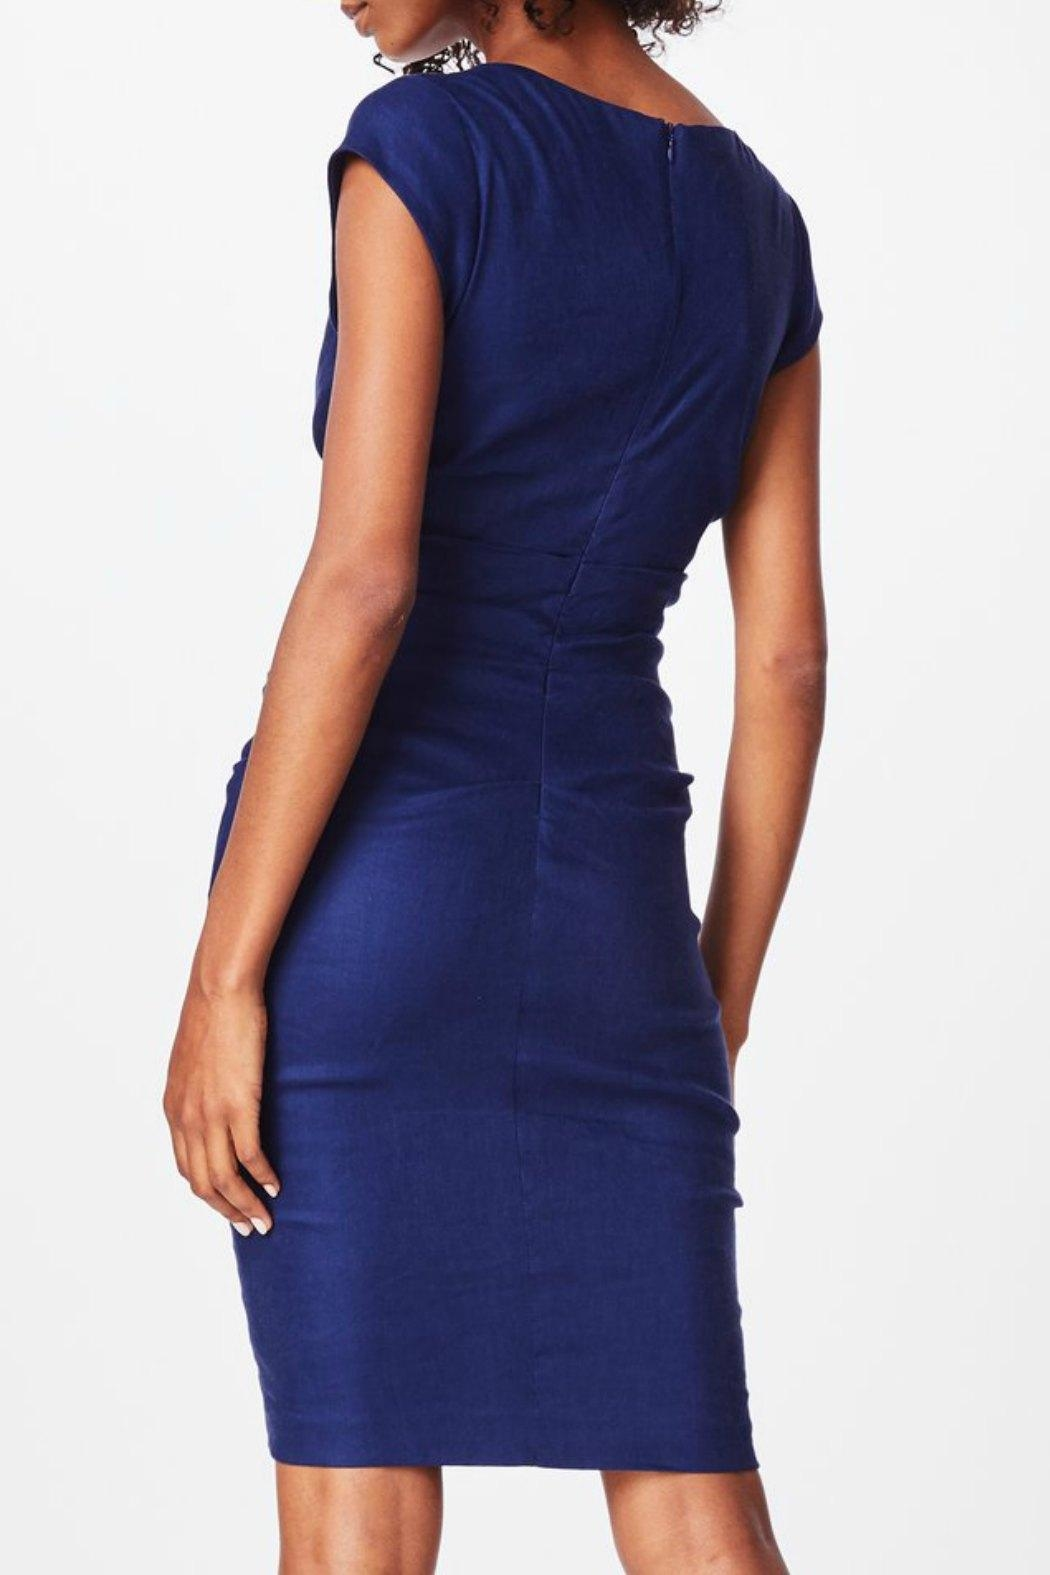 Nicole Miller Cap Sleeve Dress - Front Full Image